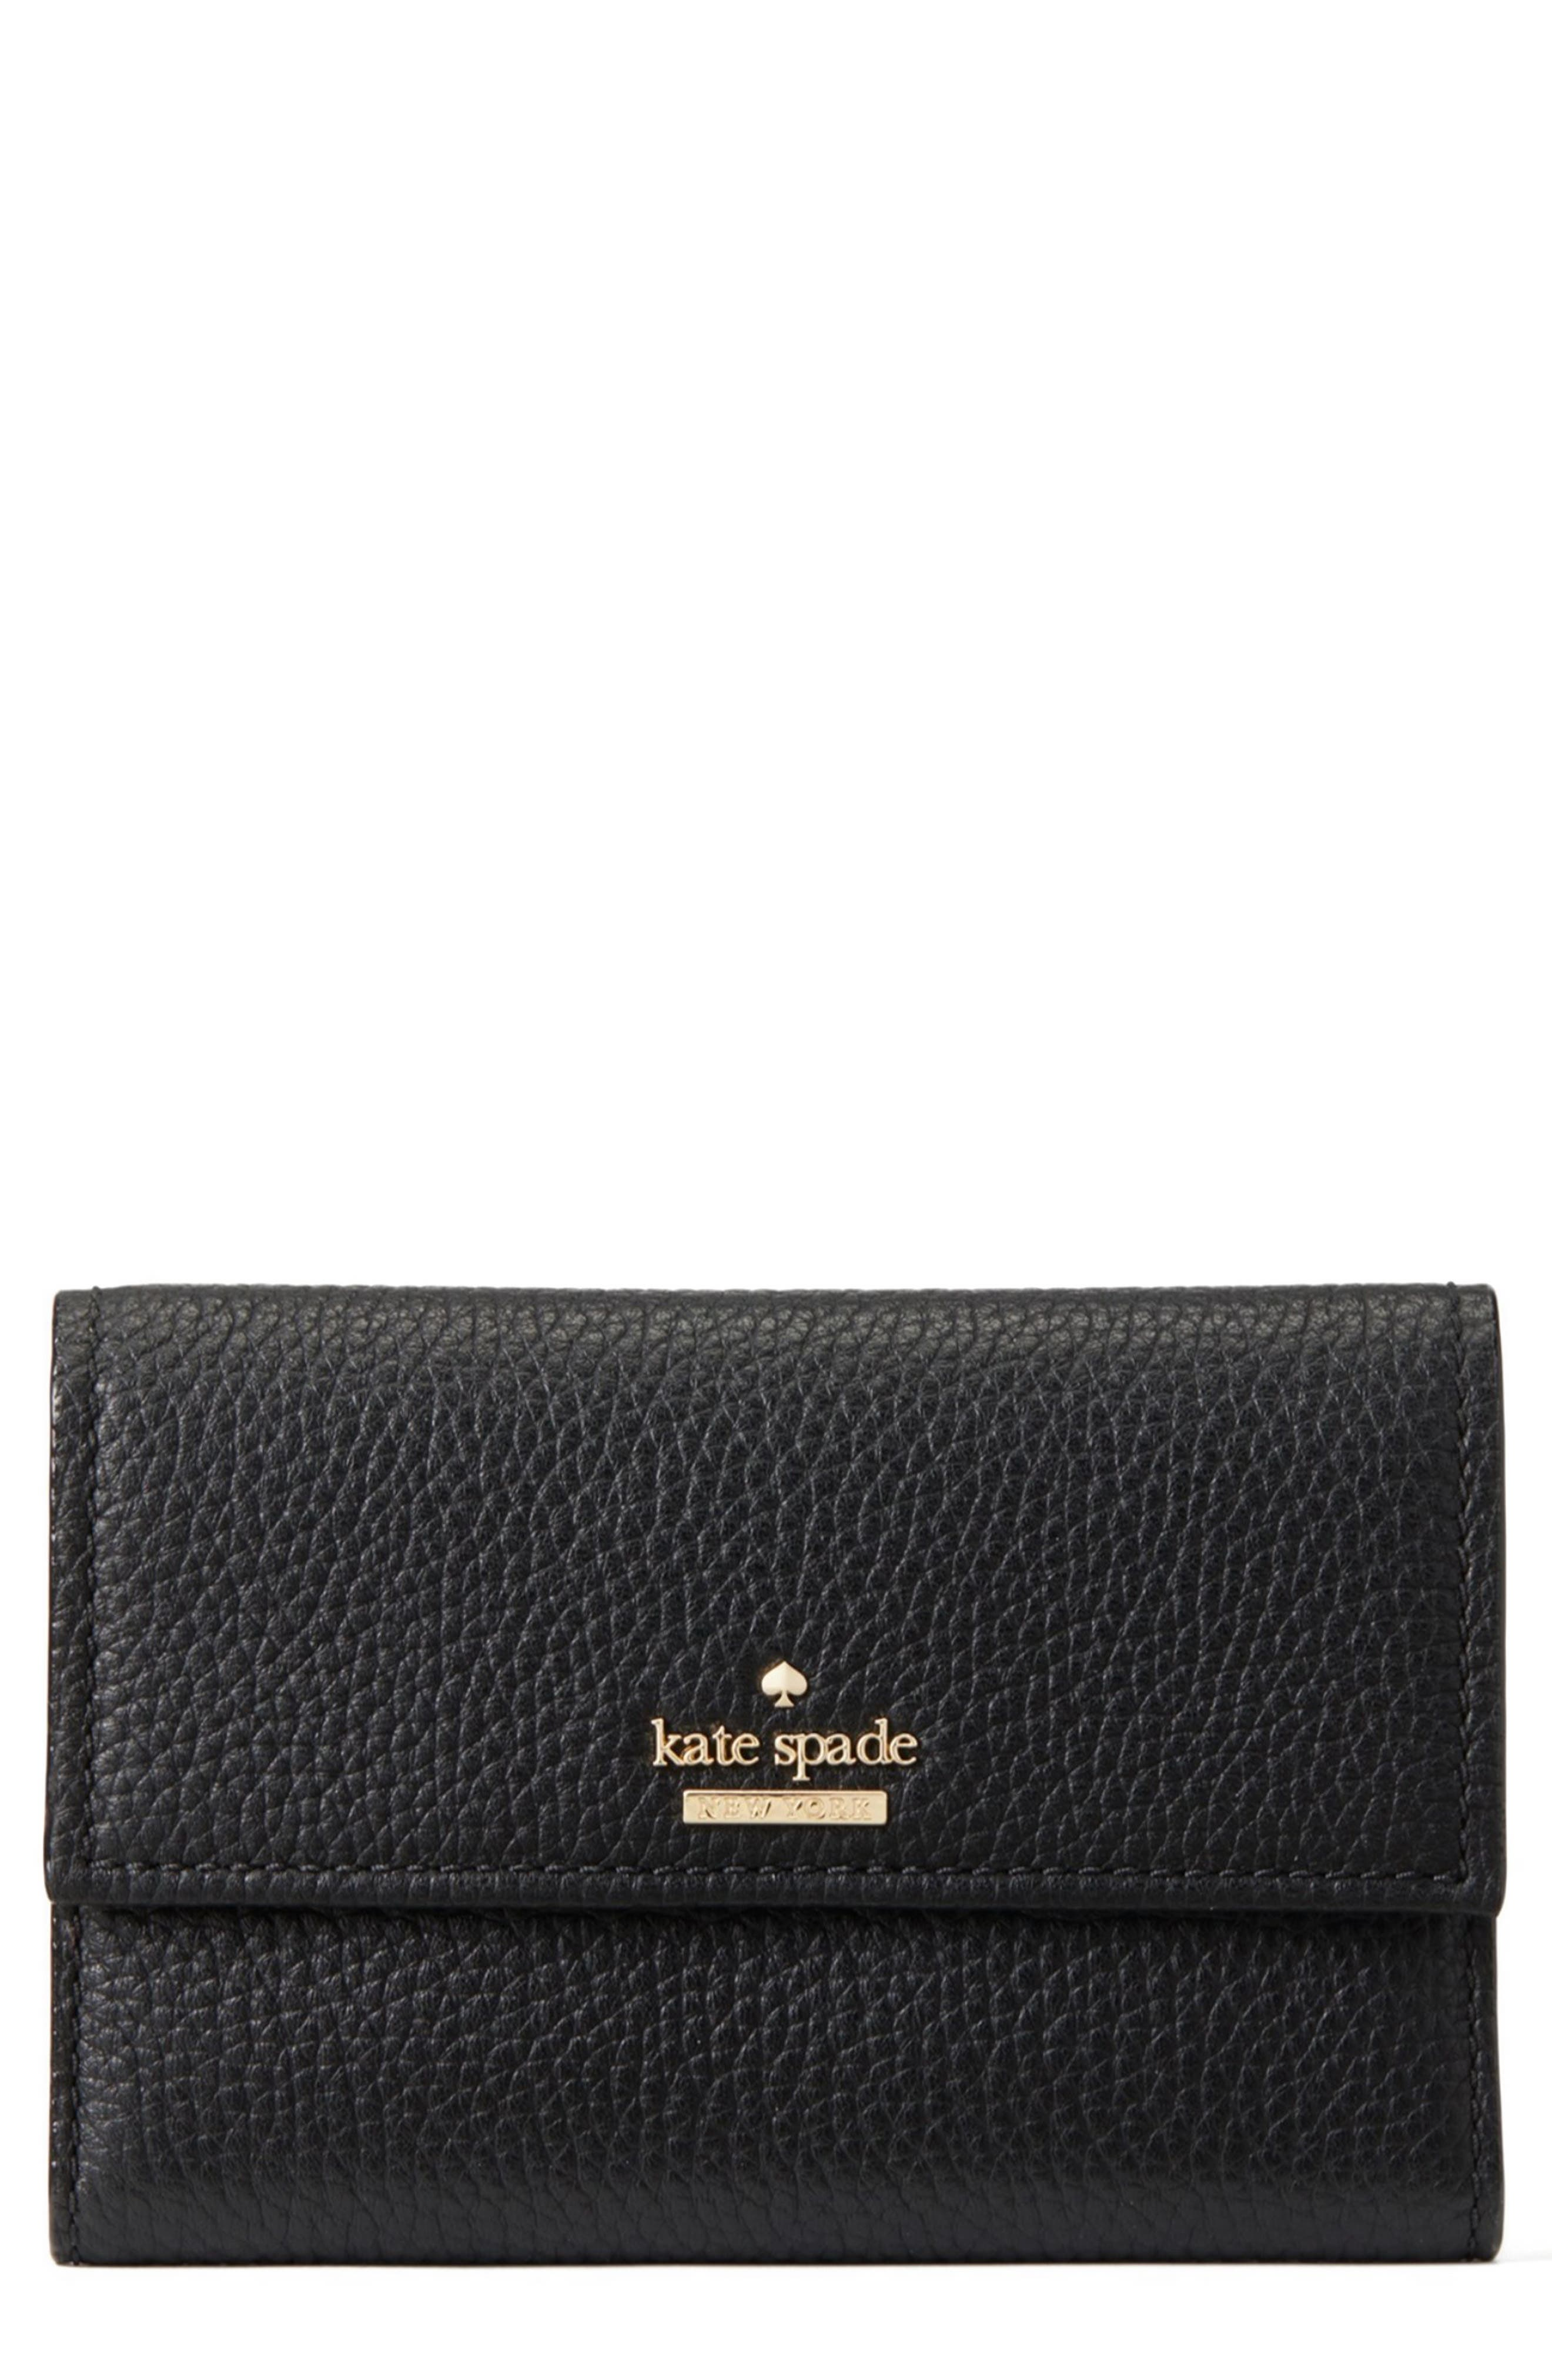 KATE SPADE NEW YORK jackson street – meredith leather wallet, Main, color, 001